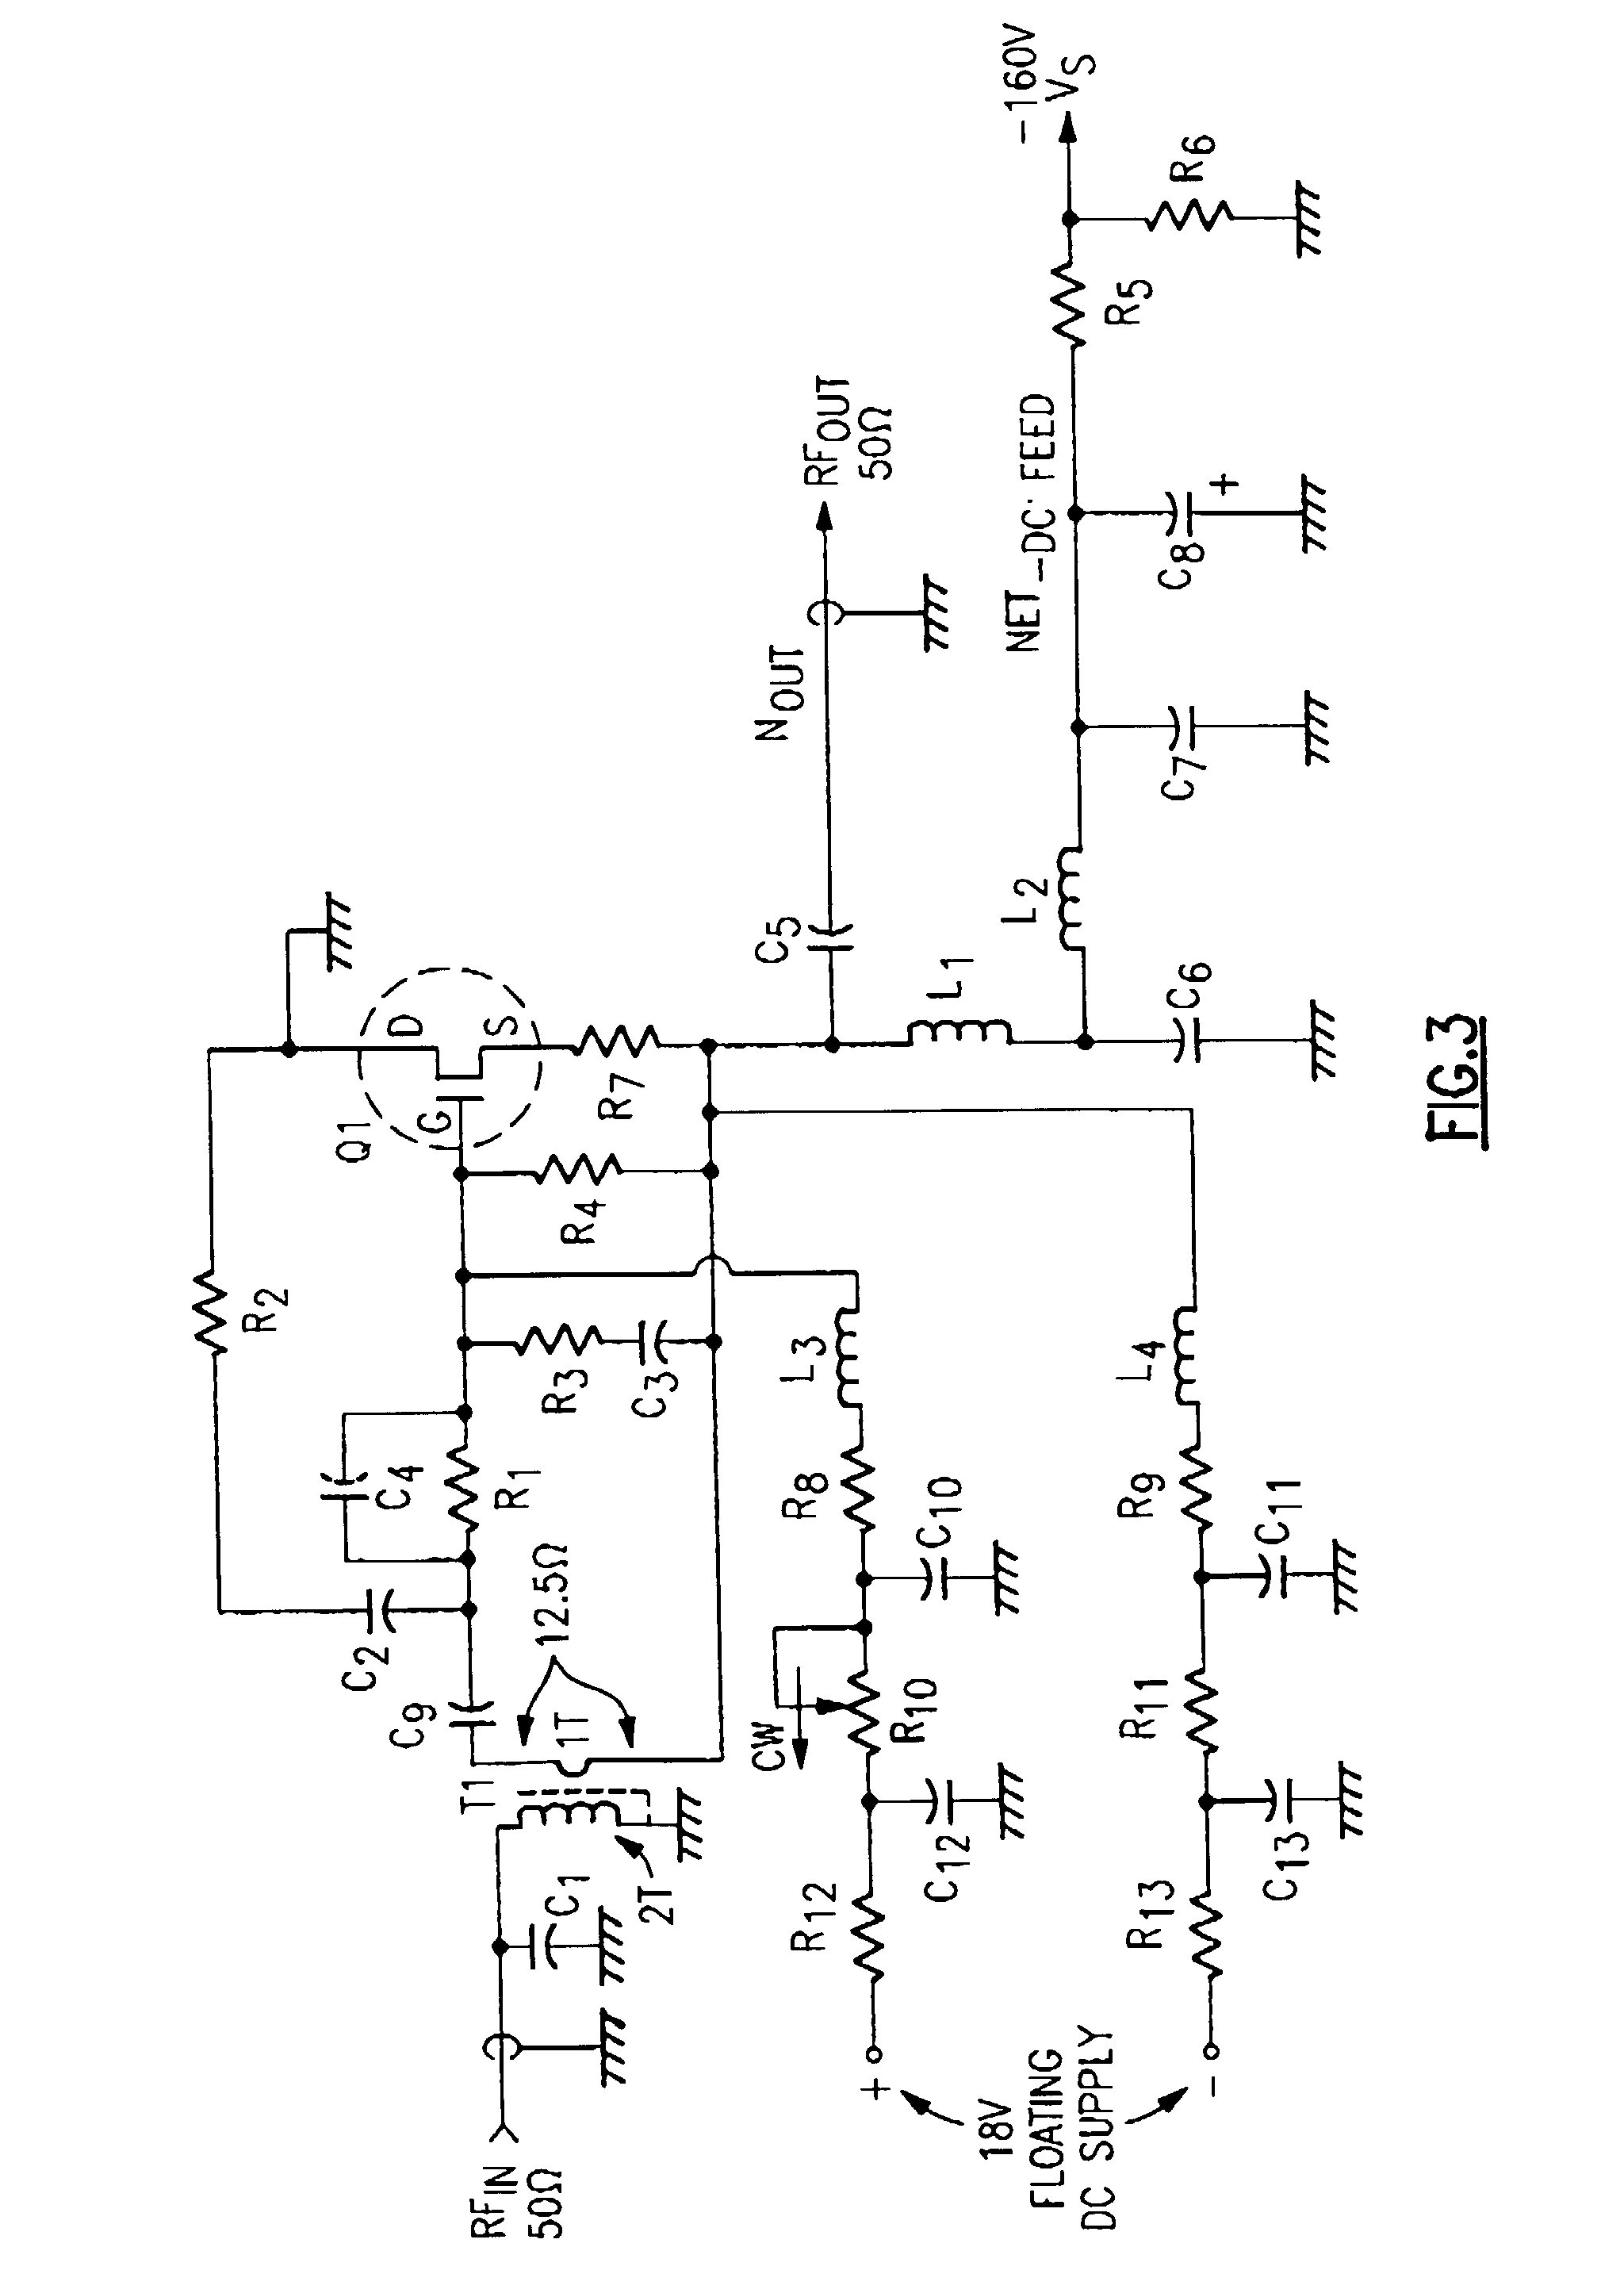 Band Pass Filter Design